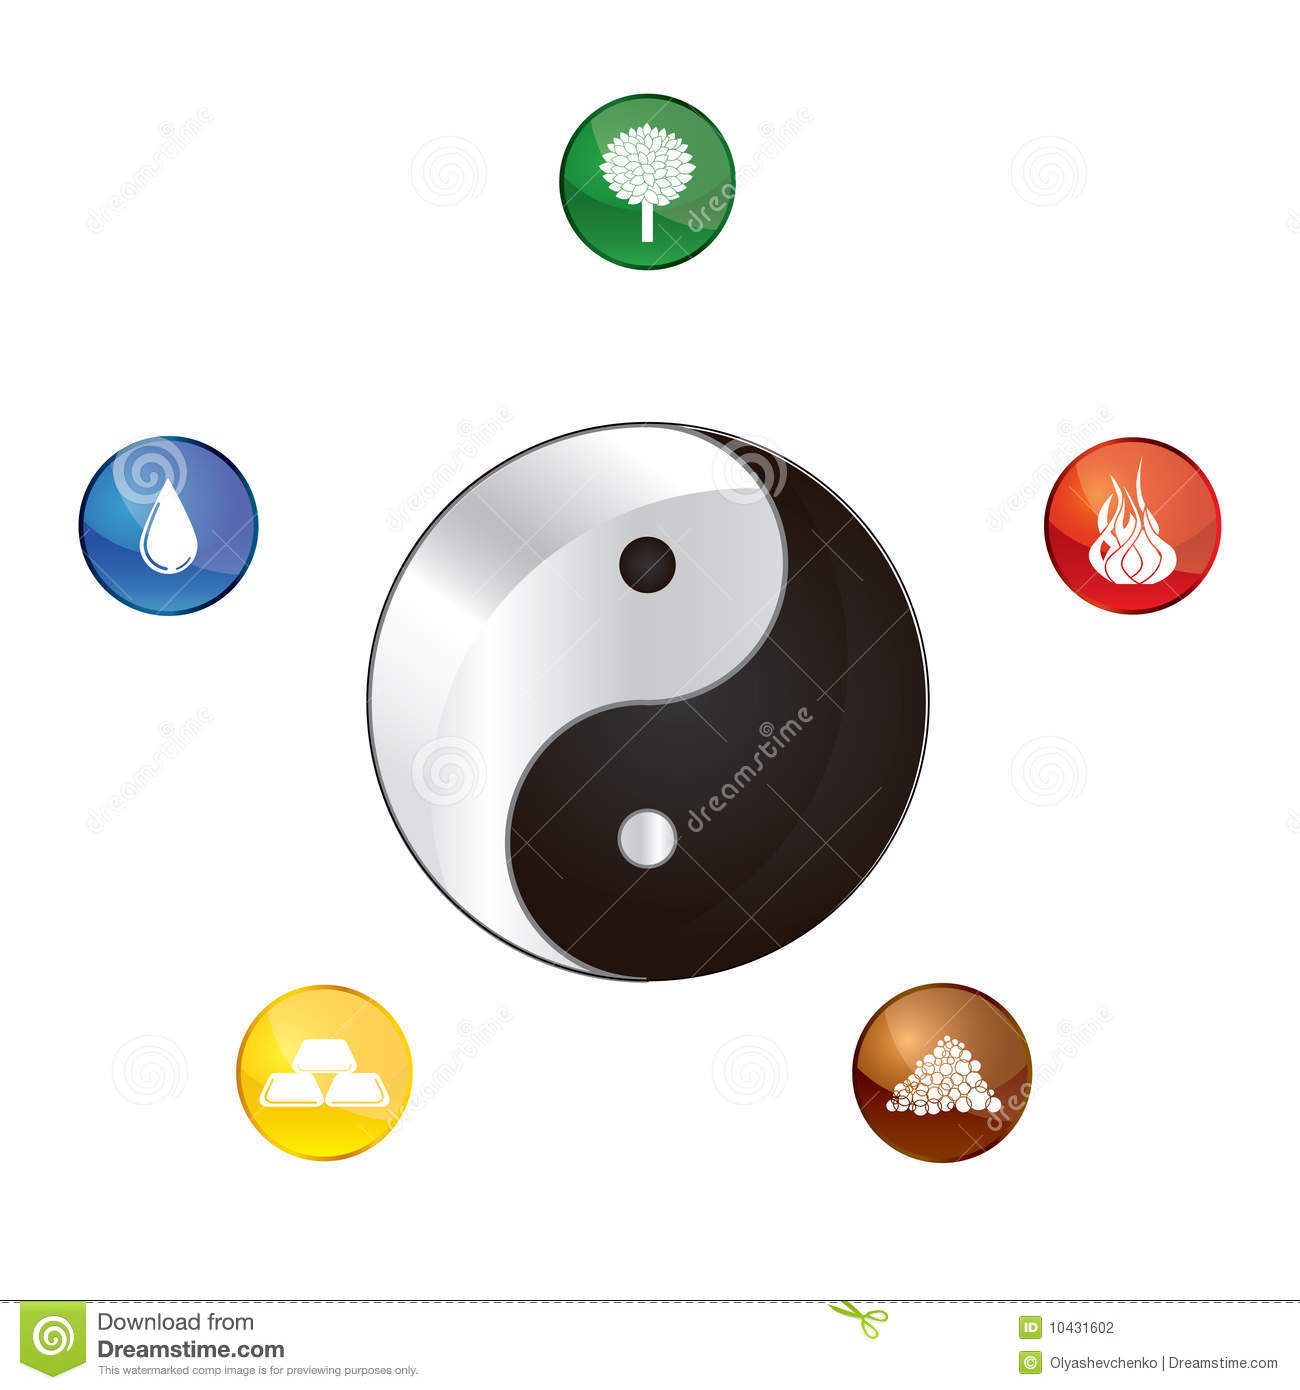 five elements of life stock vector illustration of energy Yin Yang Logo Cool Vector